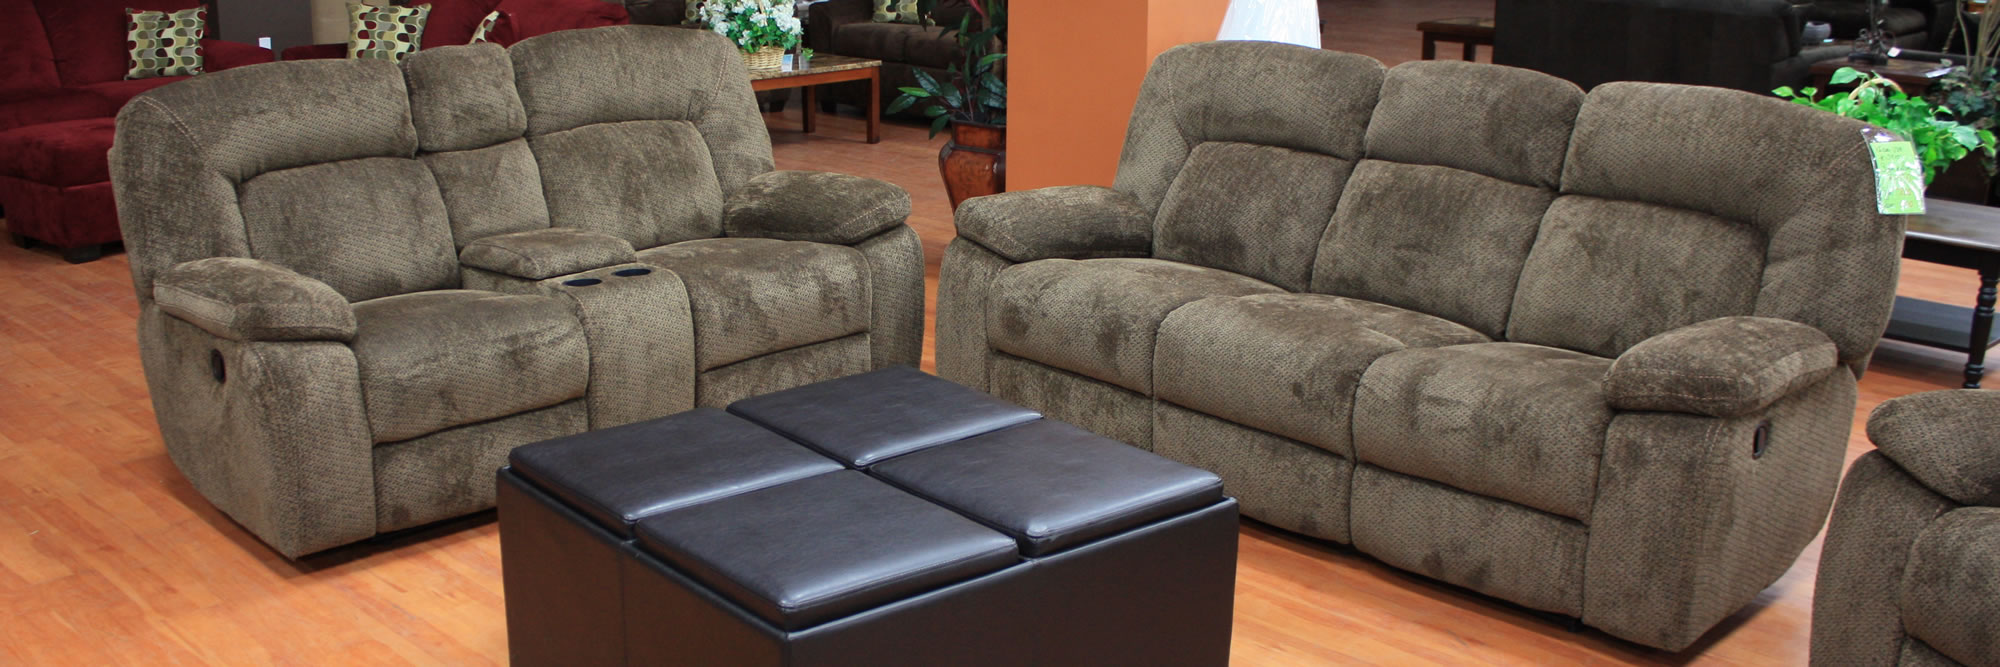 Discount furniture and mattress karcher mall nampa for Furniture nampa idaho